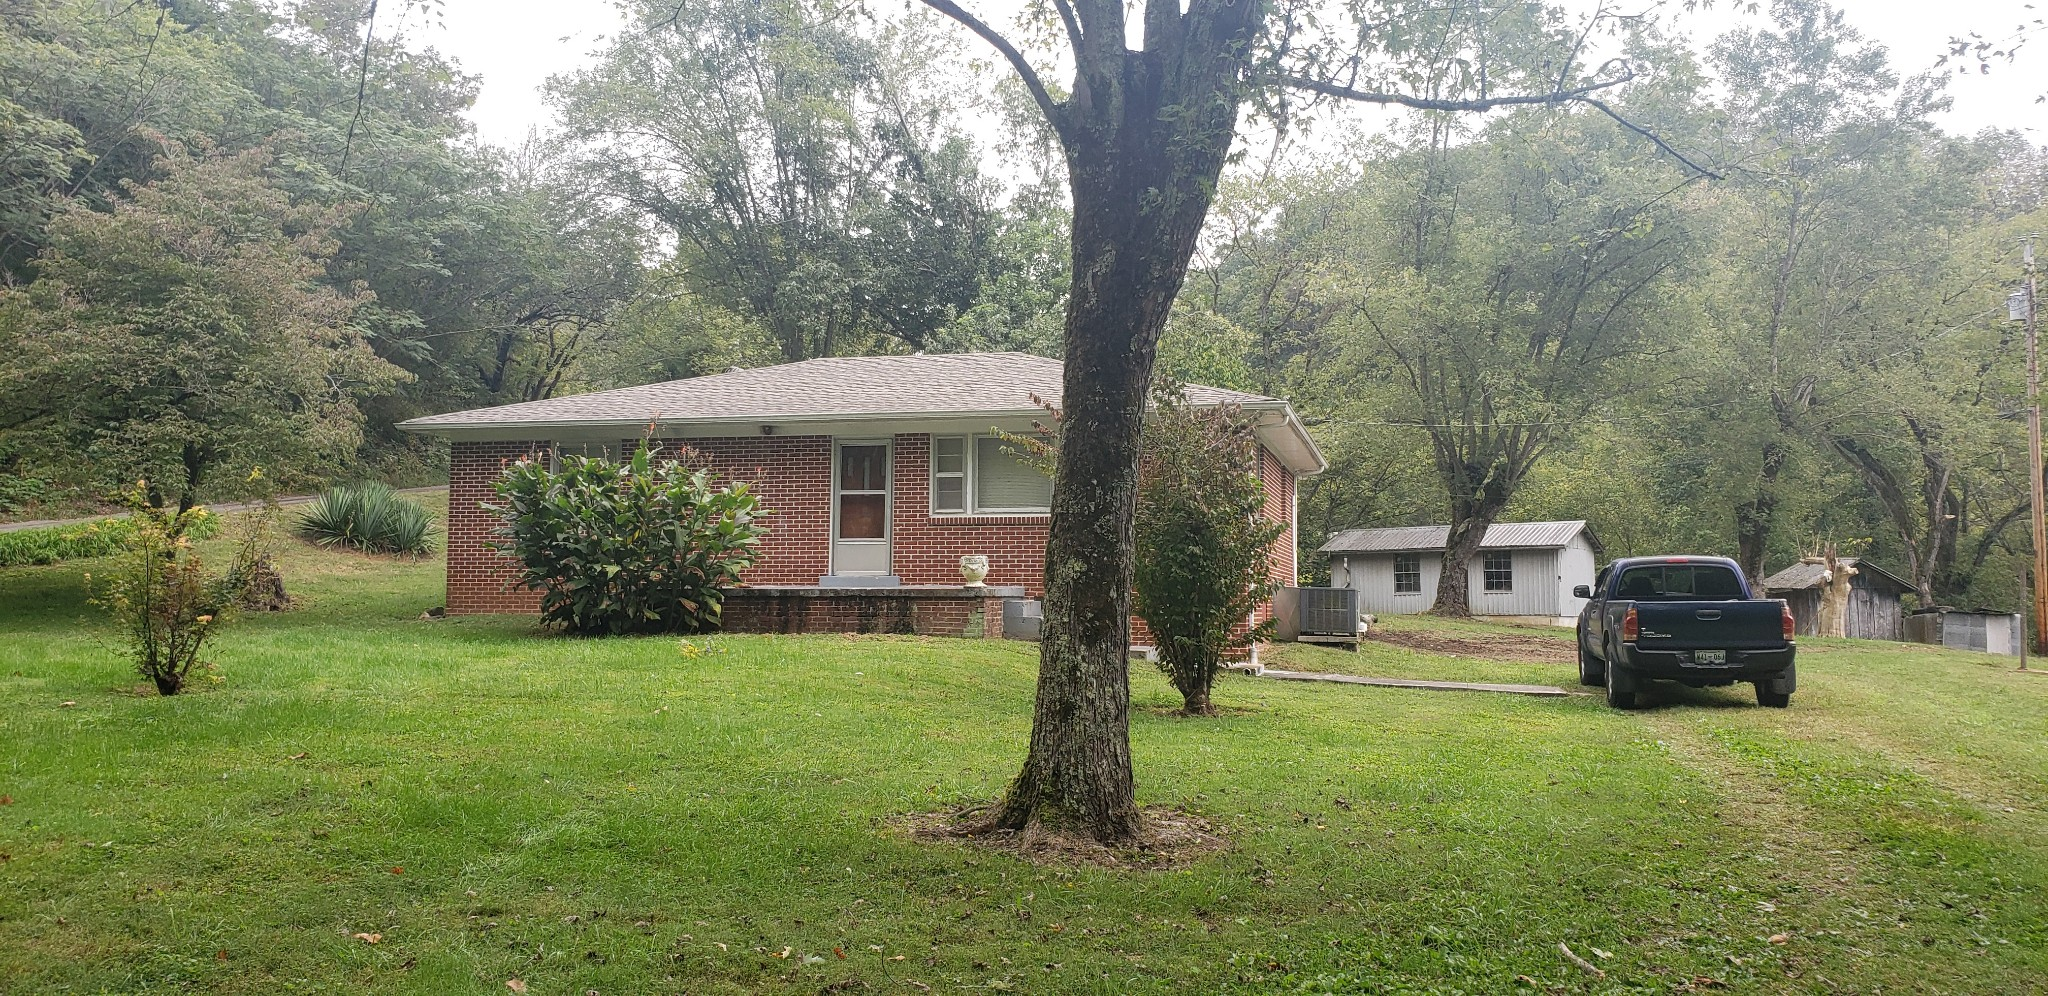 401 Possum Hollow Rd Property Photo - Dowelltown, TN real estate listing